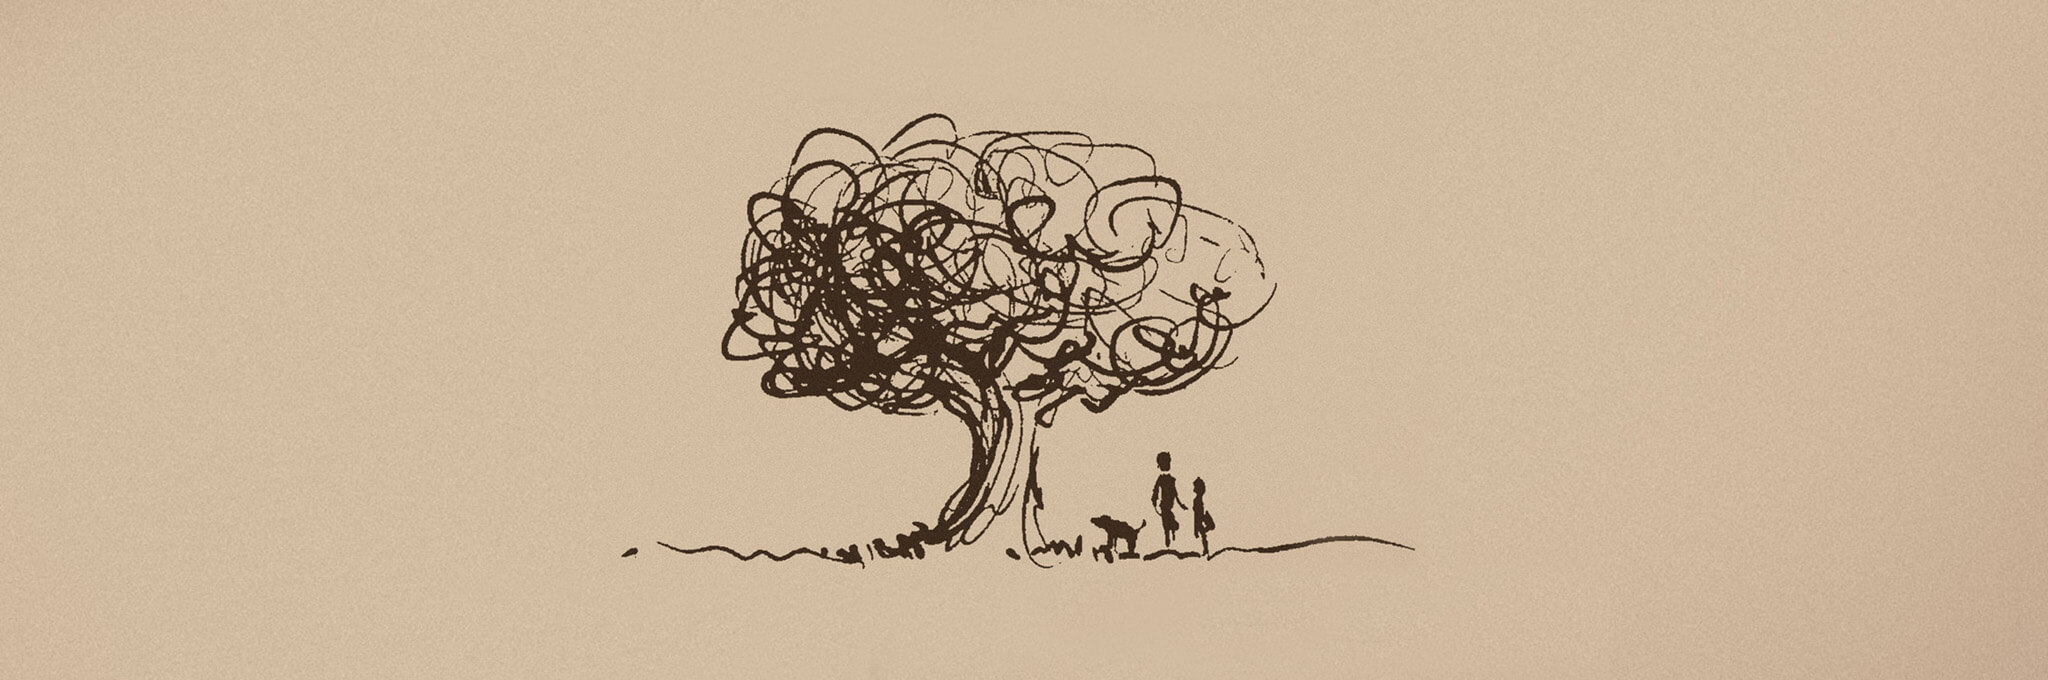 Pen illustration of tree with adult, child, and dog on light brown background